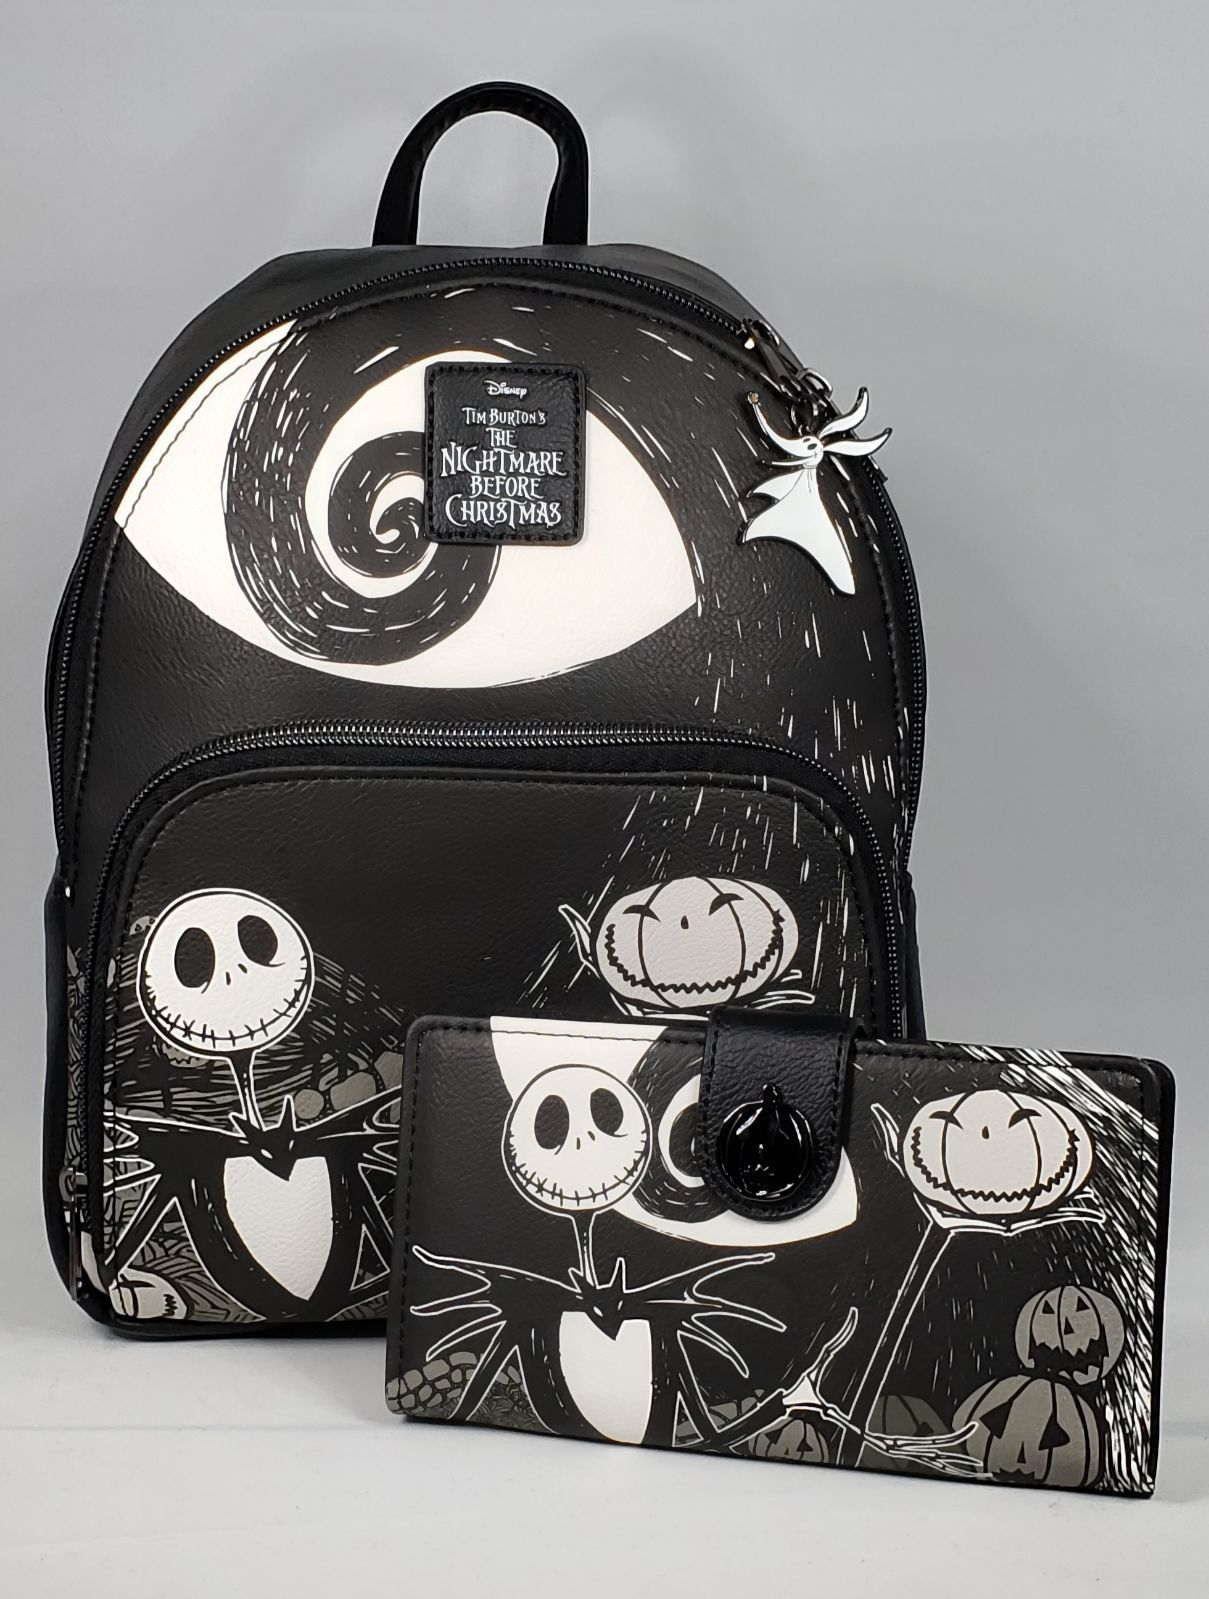 Up for sale is Brand New Hot Topic Loungefly Disney The